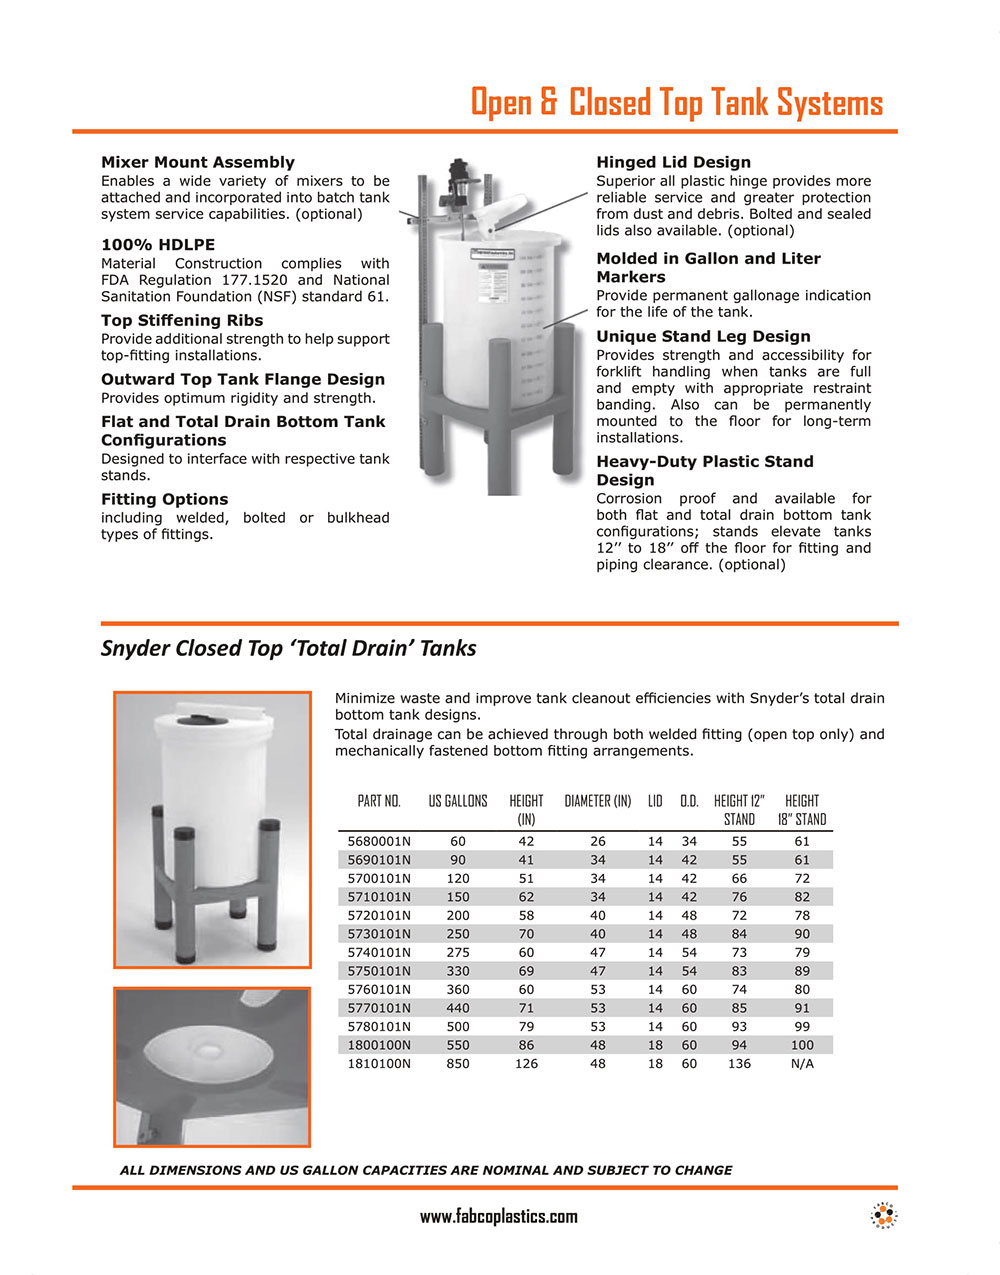 Open & Closed Top Tanks Systems